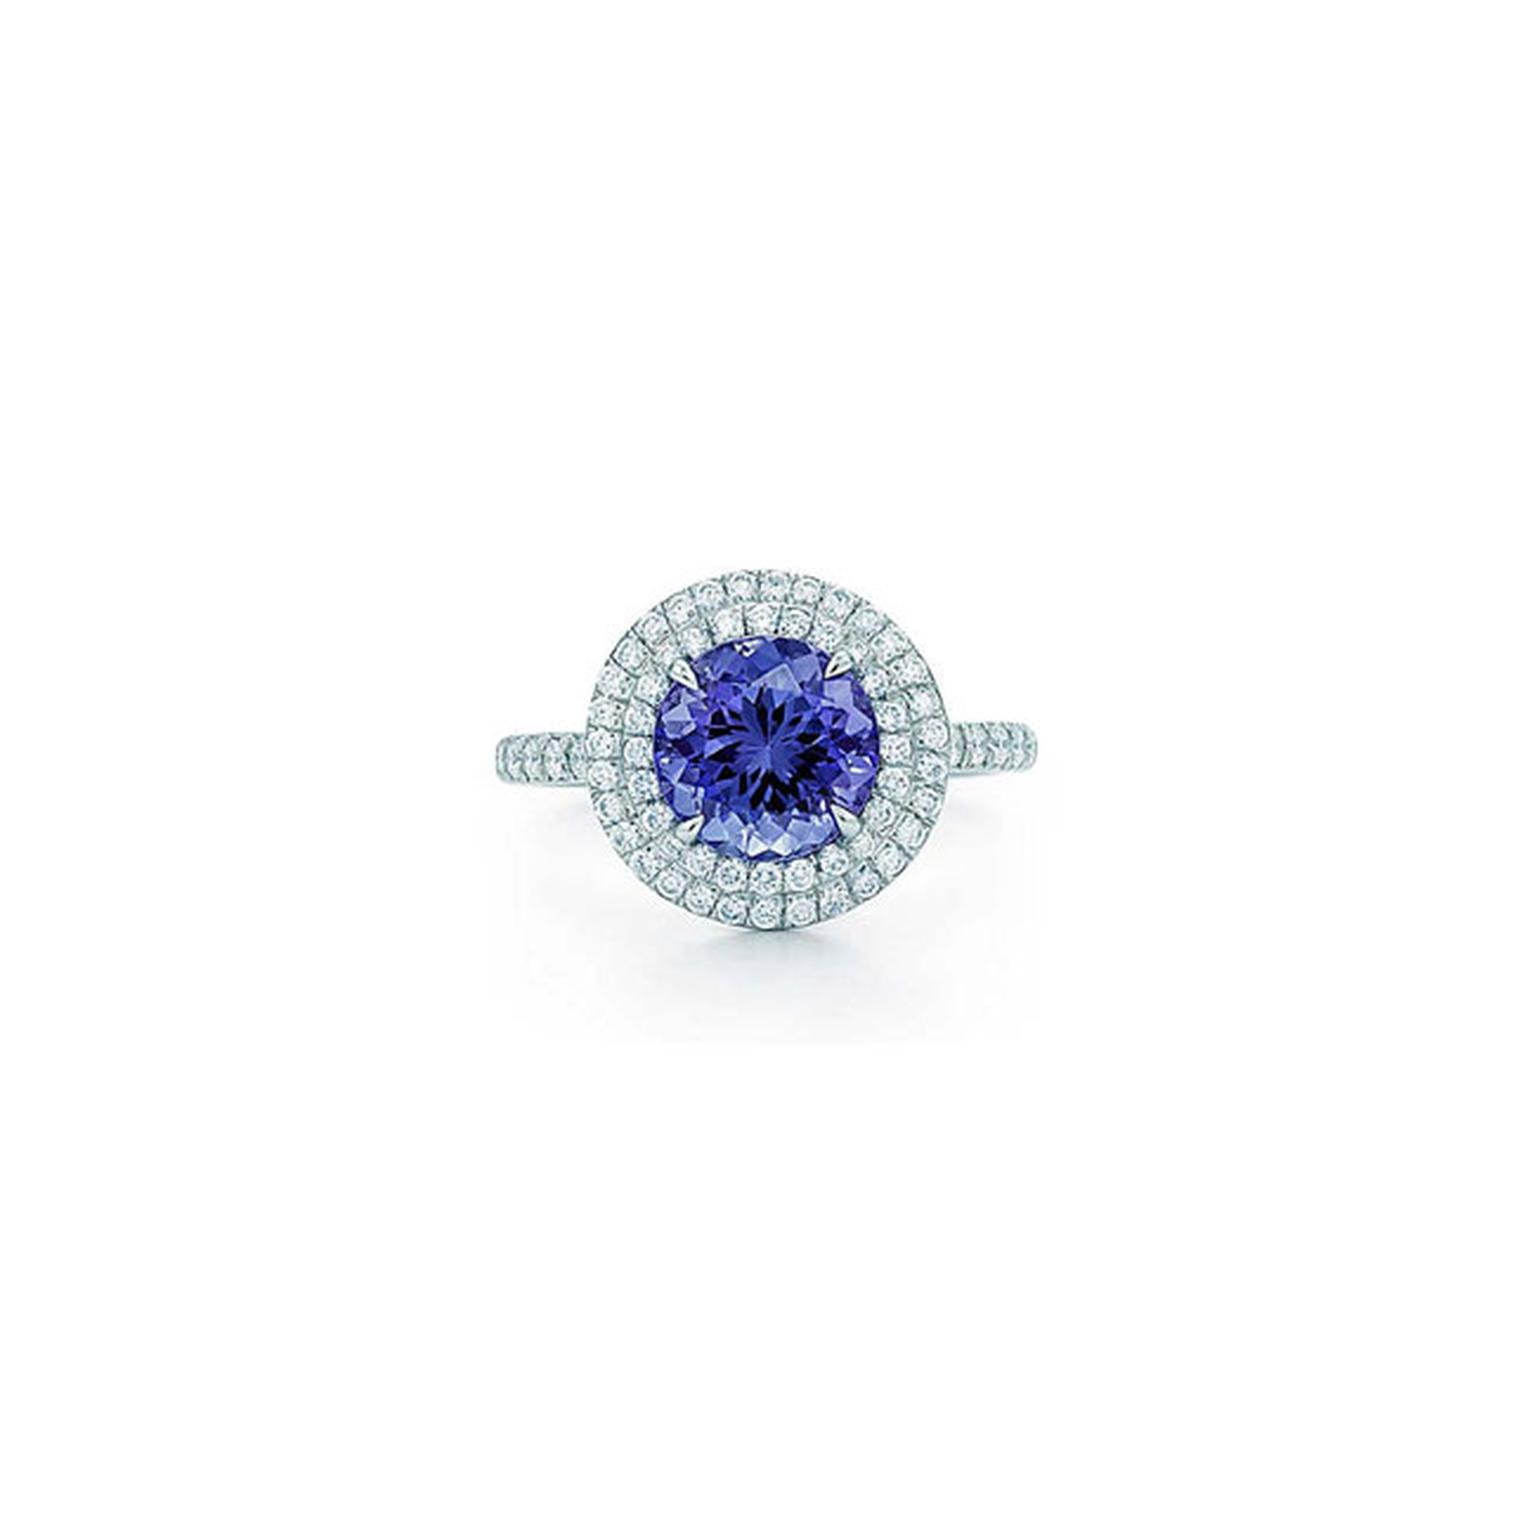 Tiffany Soleste round tanzanite and diamond ring_main